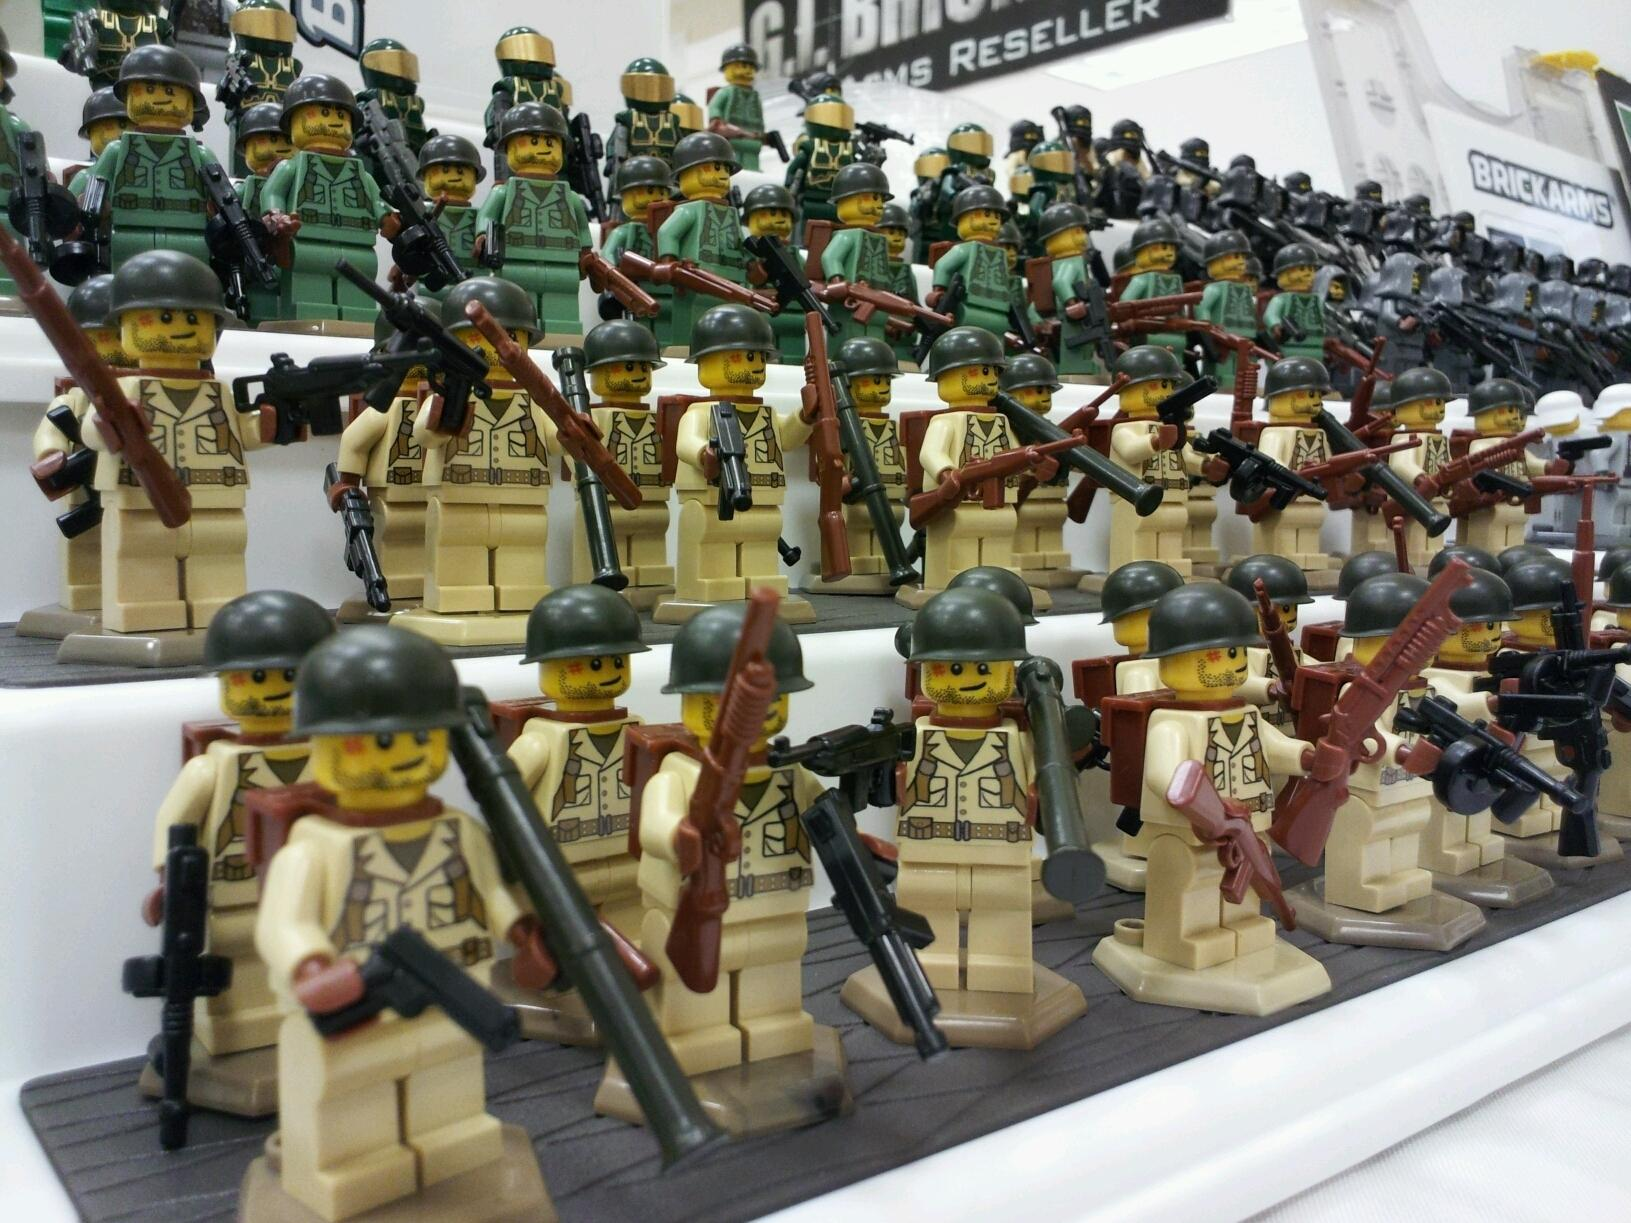 Lego while the helmets and weapons are made by brickarms the